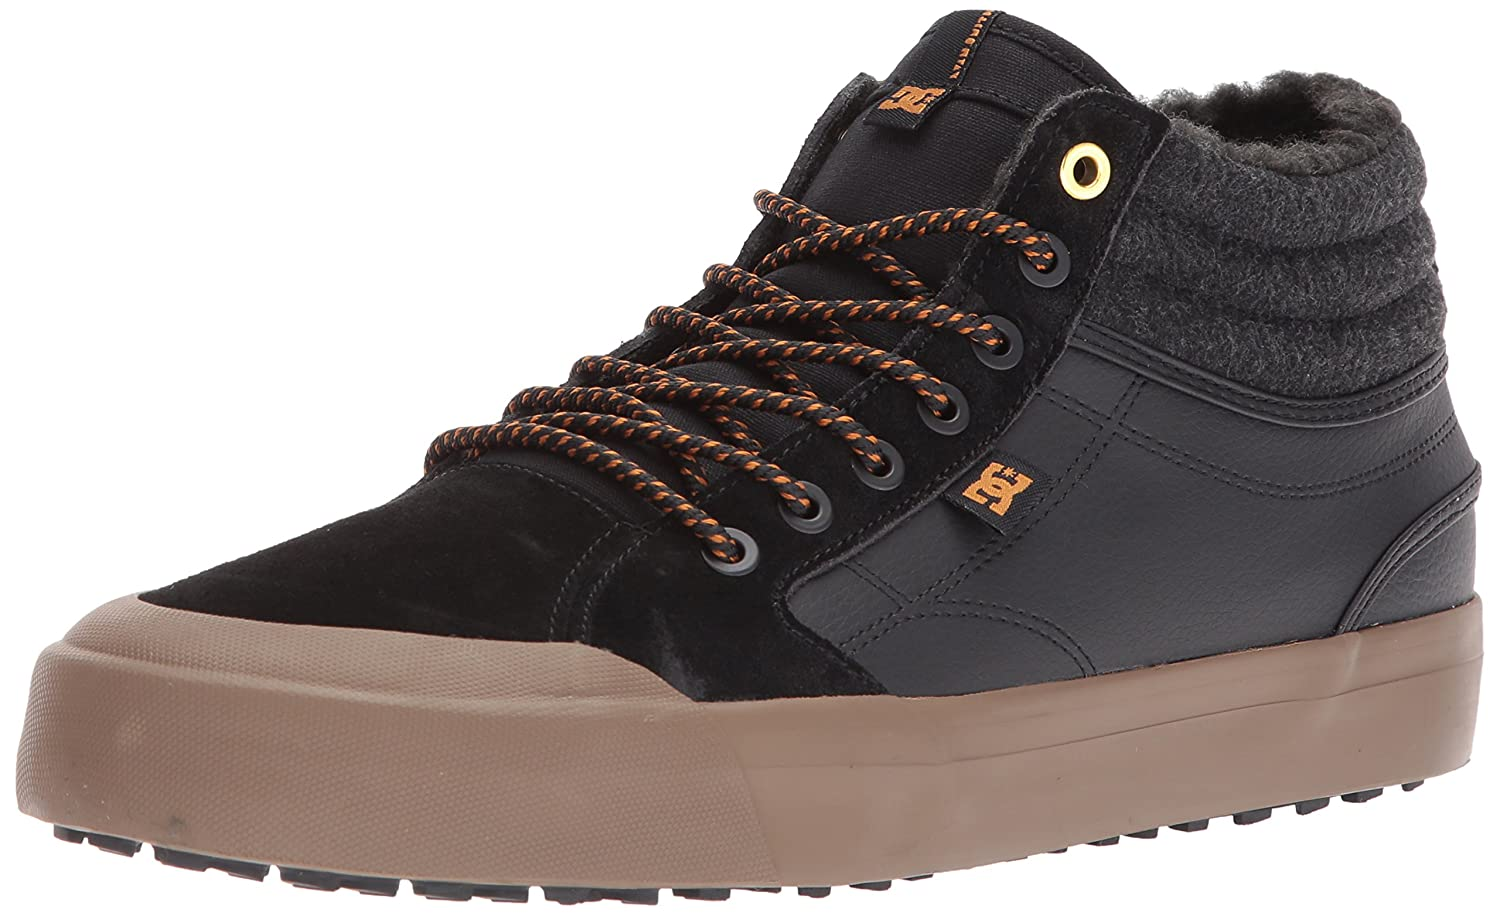 DC Men's Evan Smith HI Wnt Skate Shoe B06Y5LL86X 12 D D US|Black/Black/Gum